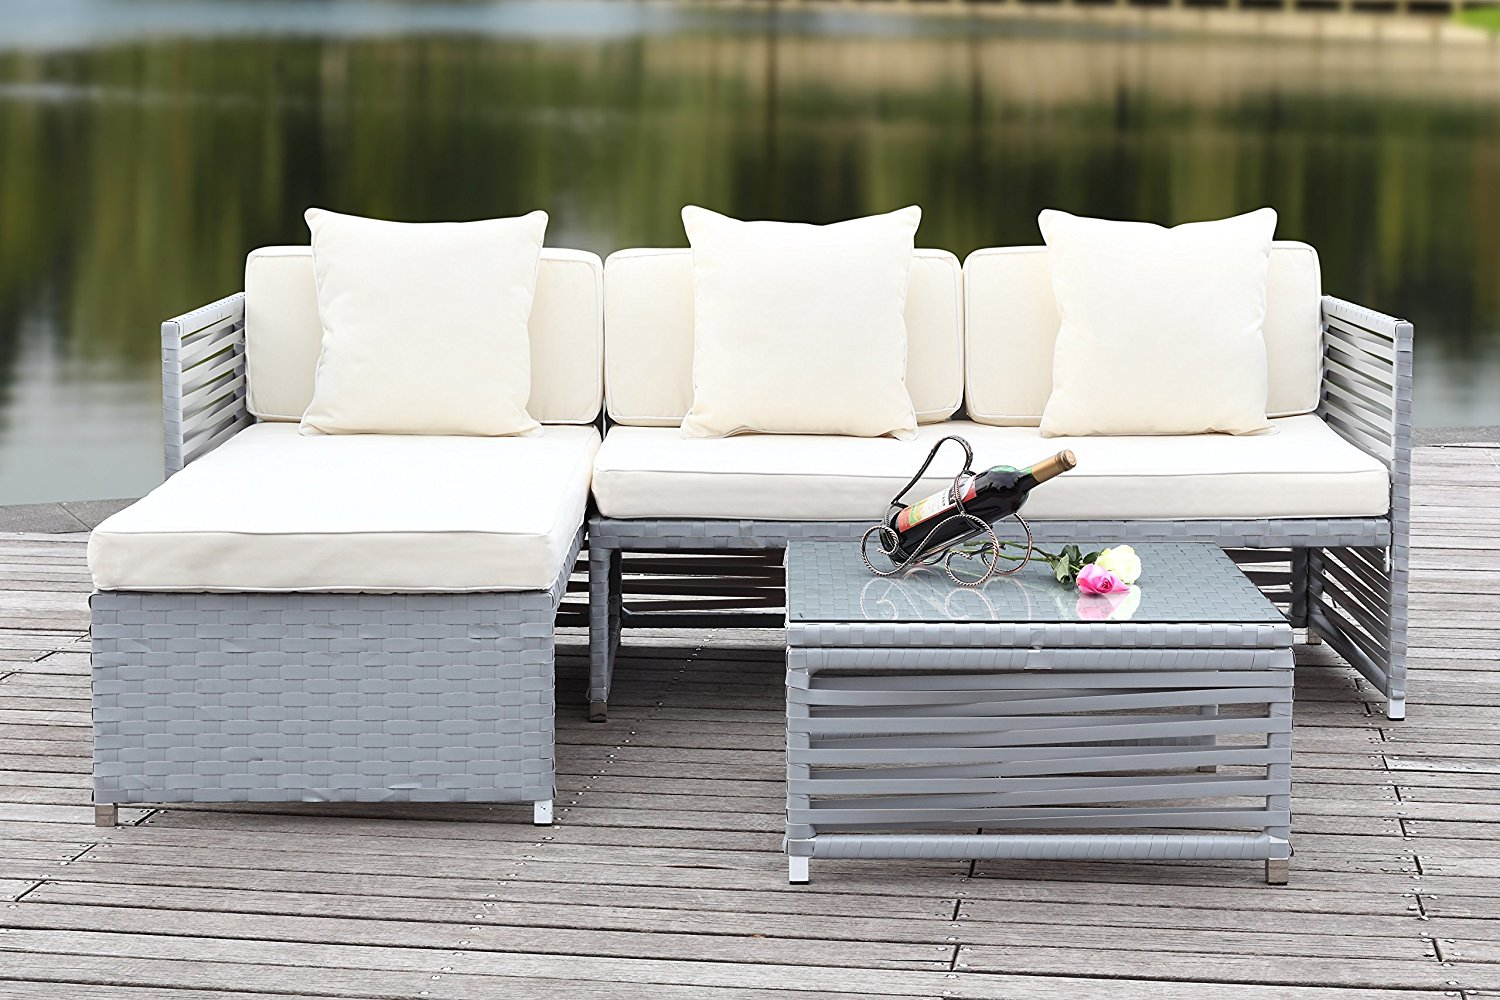 Safavieh 3-Piece Outdoor Collection Likoma Wicker Patio Set, Grey and Beige